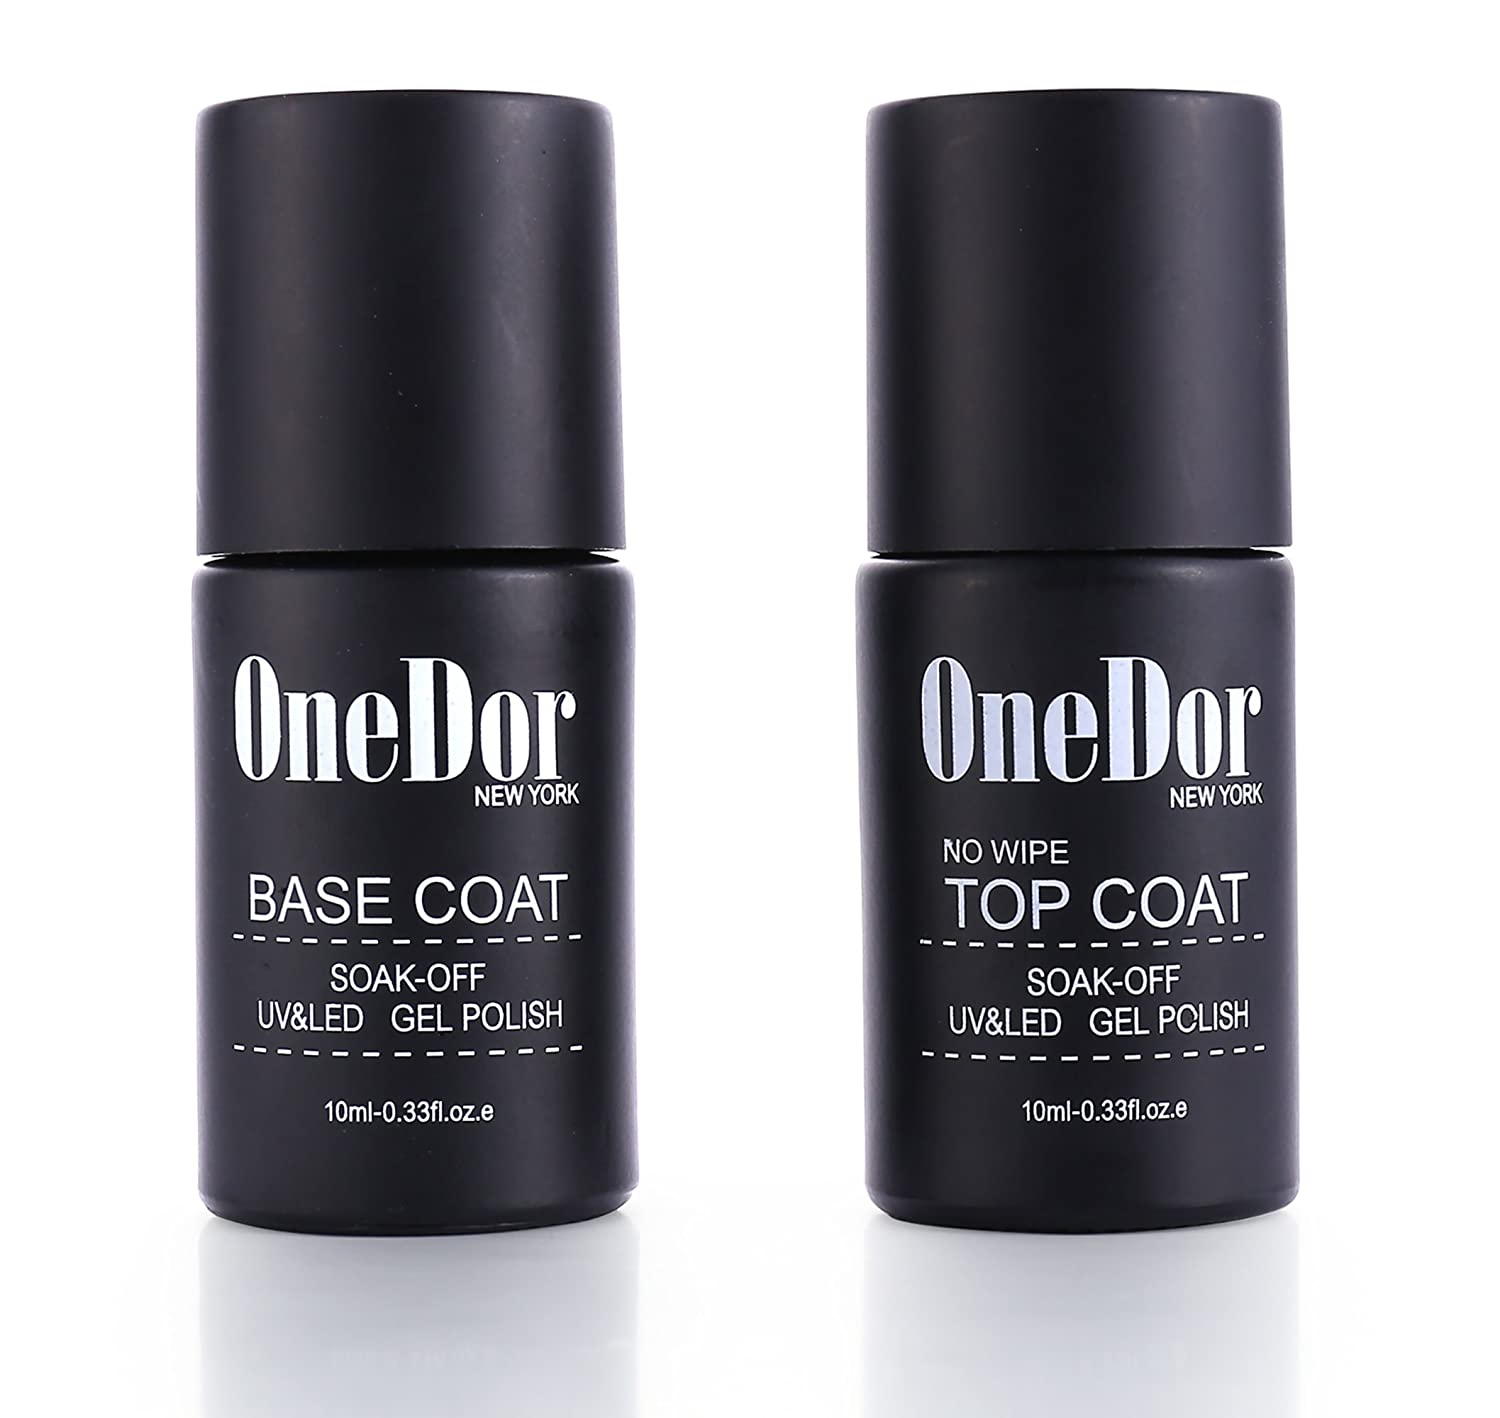 OneDor One Step Gel Polish UV Led Cured Required Soak Off No Wipe Top Coat Nail Polish (2 Pack No Wipe Top Coat) Ltd